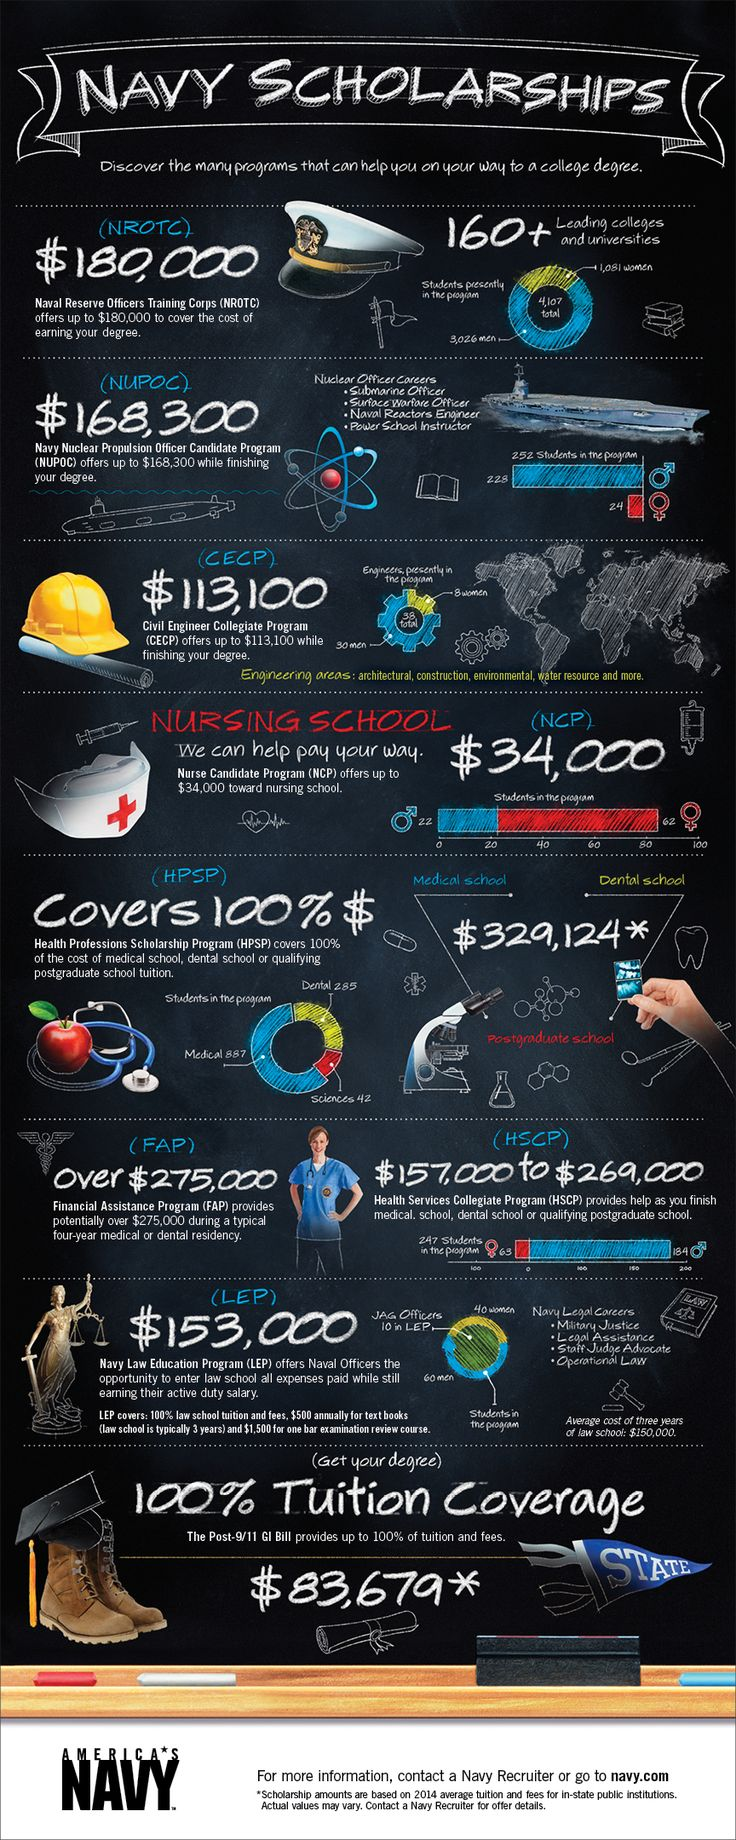 There are so many programs in the Navy that help you pay for school. Get a glimpse of how many there are and which one could be right for you. | navy.com #Navy #USNavy #AmericasNavy